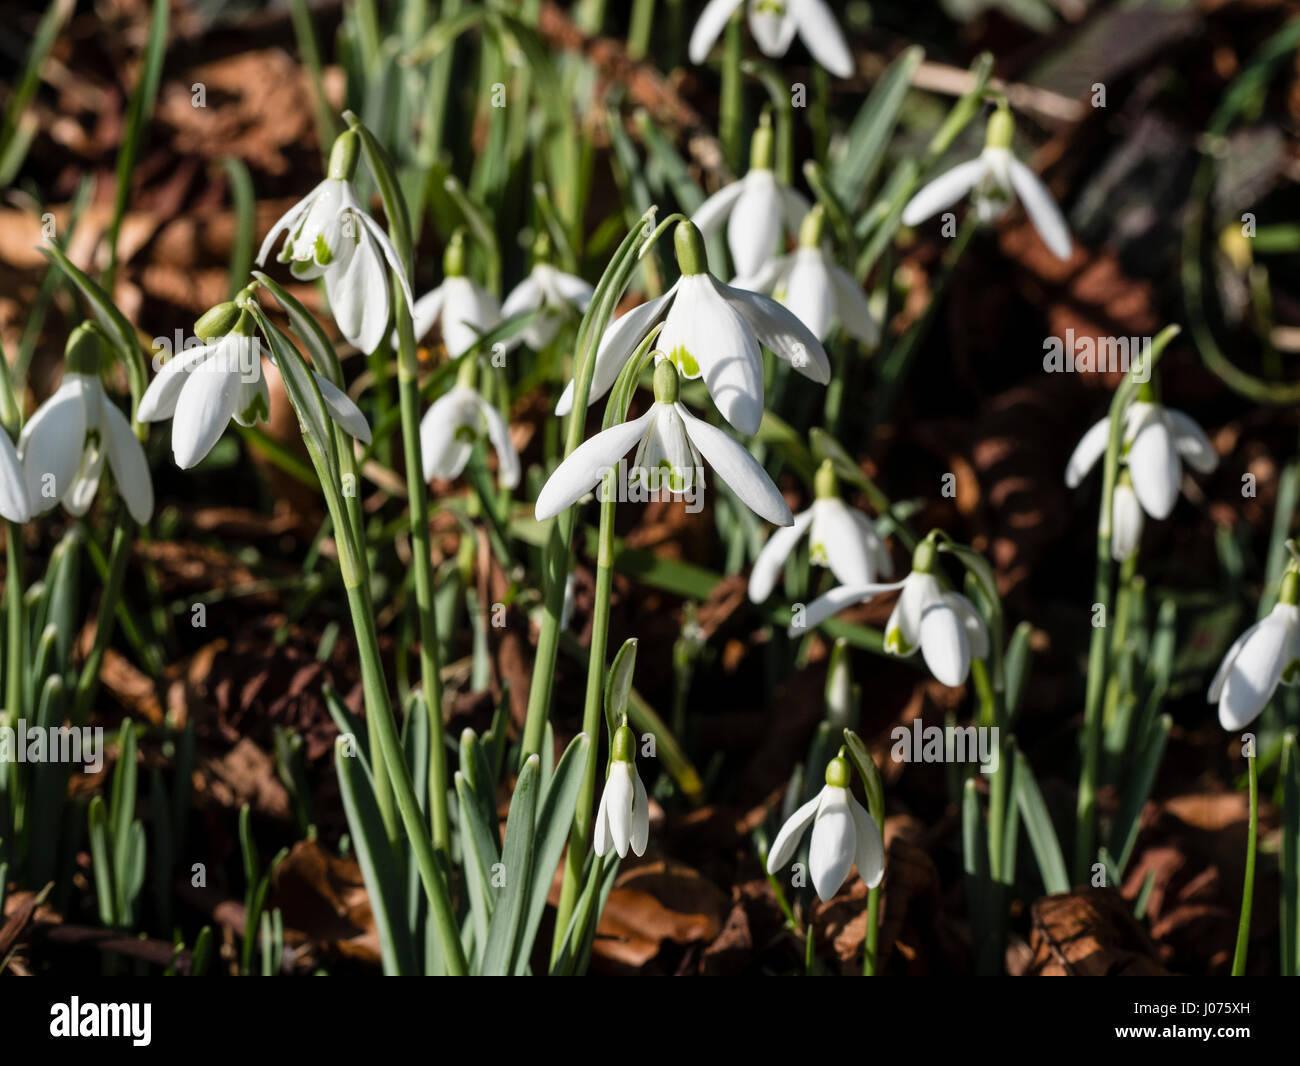 Snowdrops growing in churchyard in Yorkshire UK - Stock Image